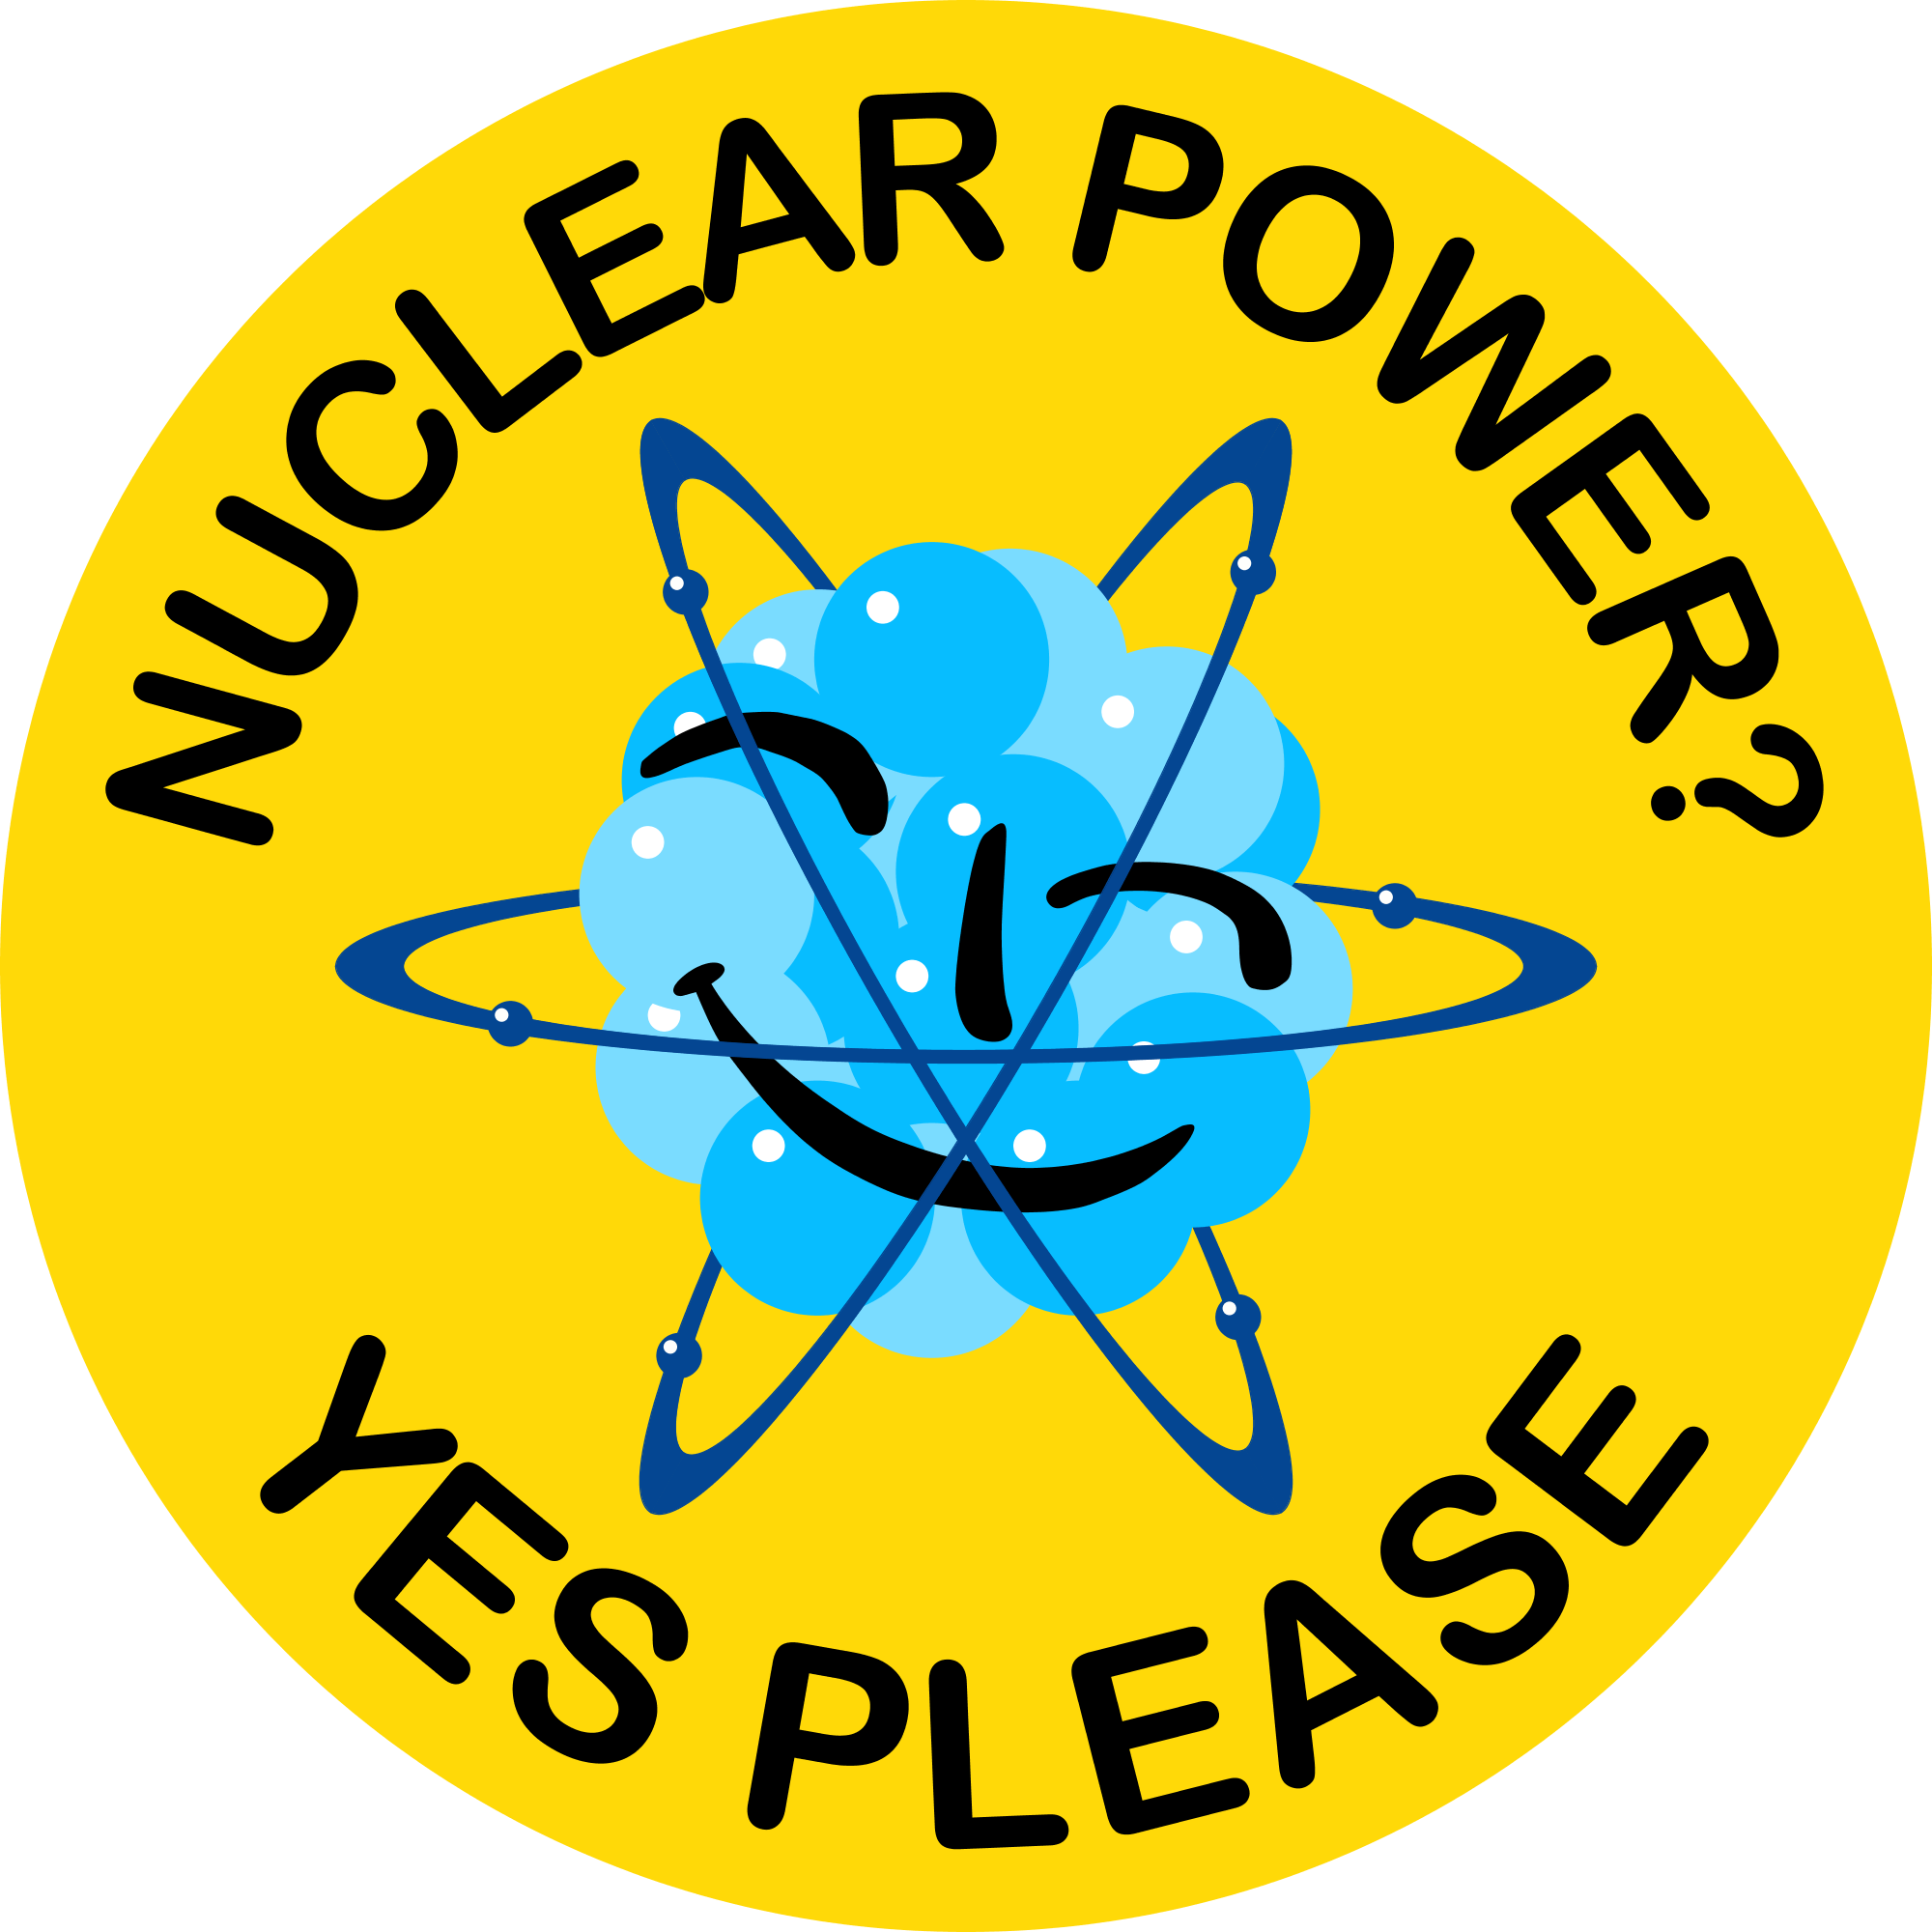 Nuke power up png. Not only is nuclear